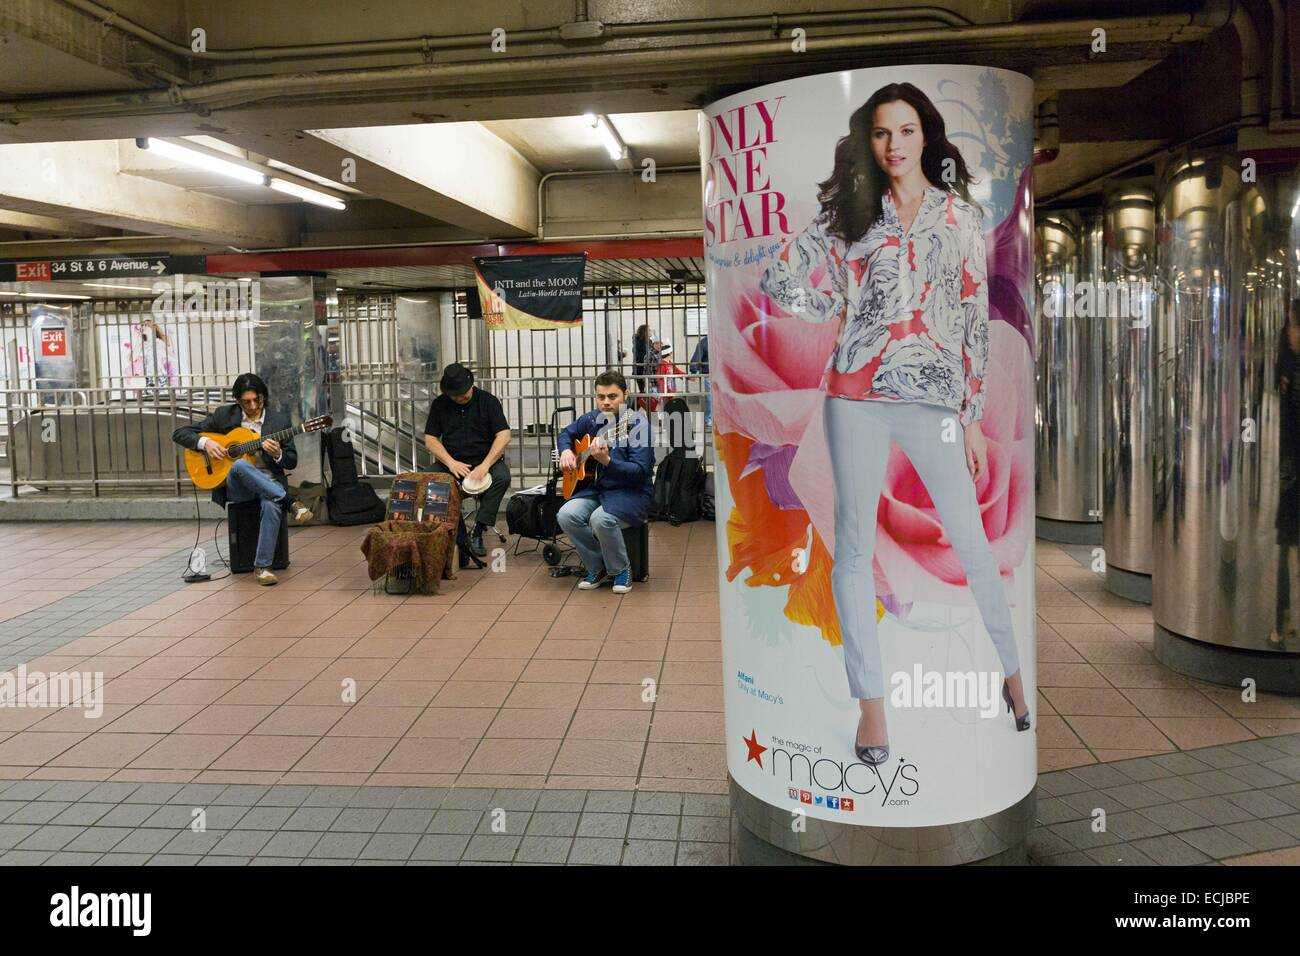 USA, New York, Manhattan, musicians in the subway and advertising - Stock Image